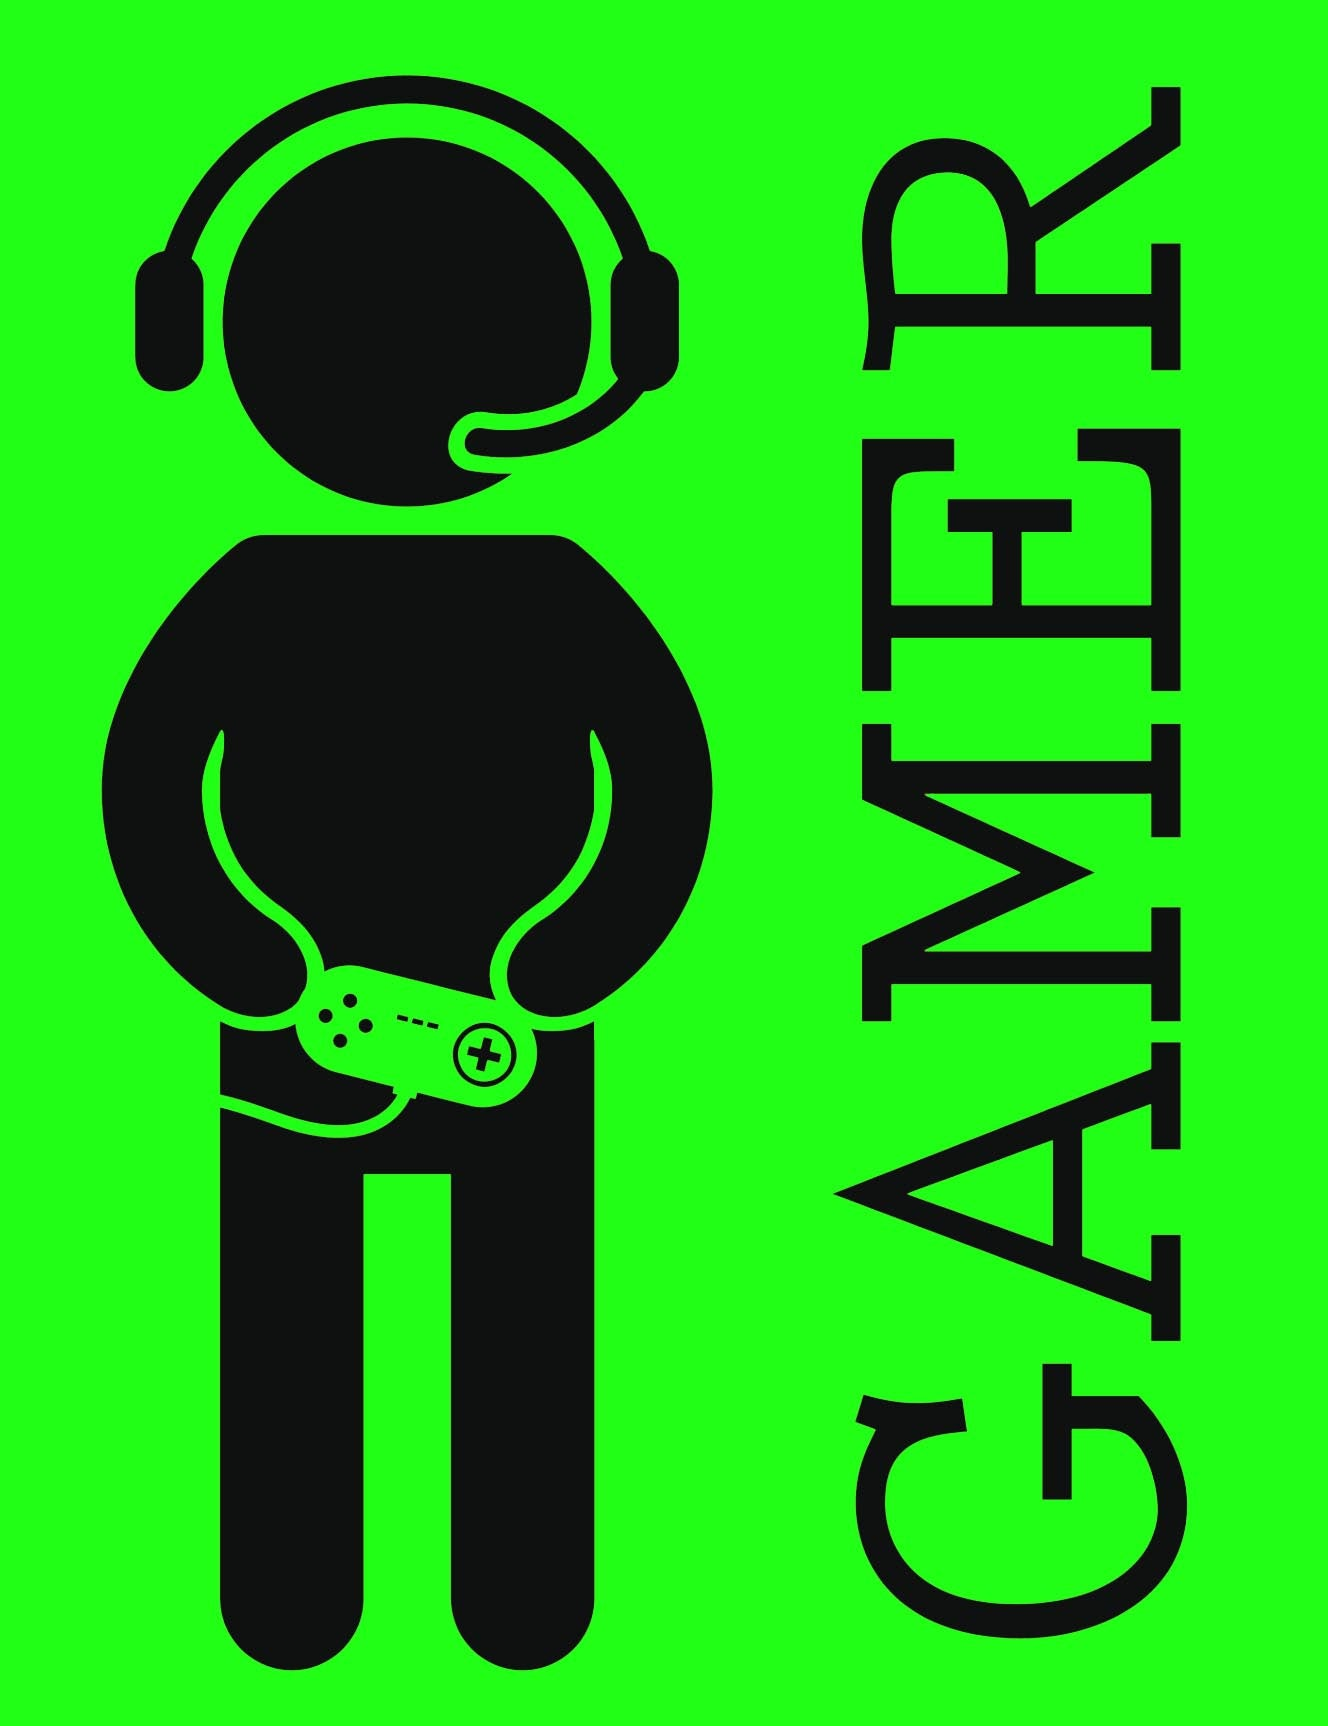 VIDEO GAMES GAMER WITH HEADPHONES AND CONTROLLER GREEN BLACK Vinyl Decal Sticker